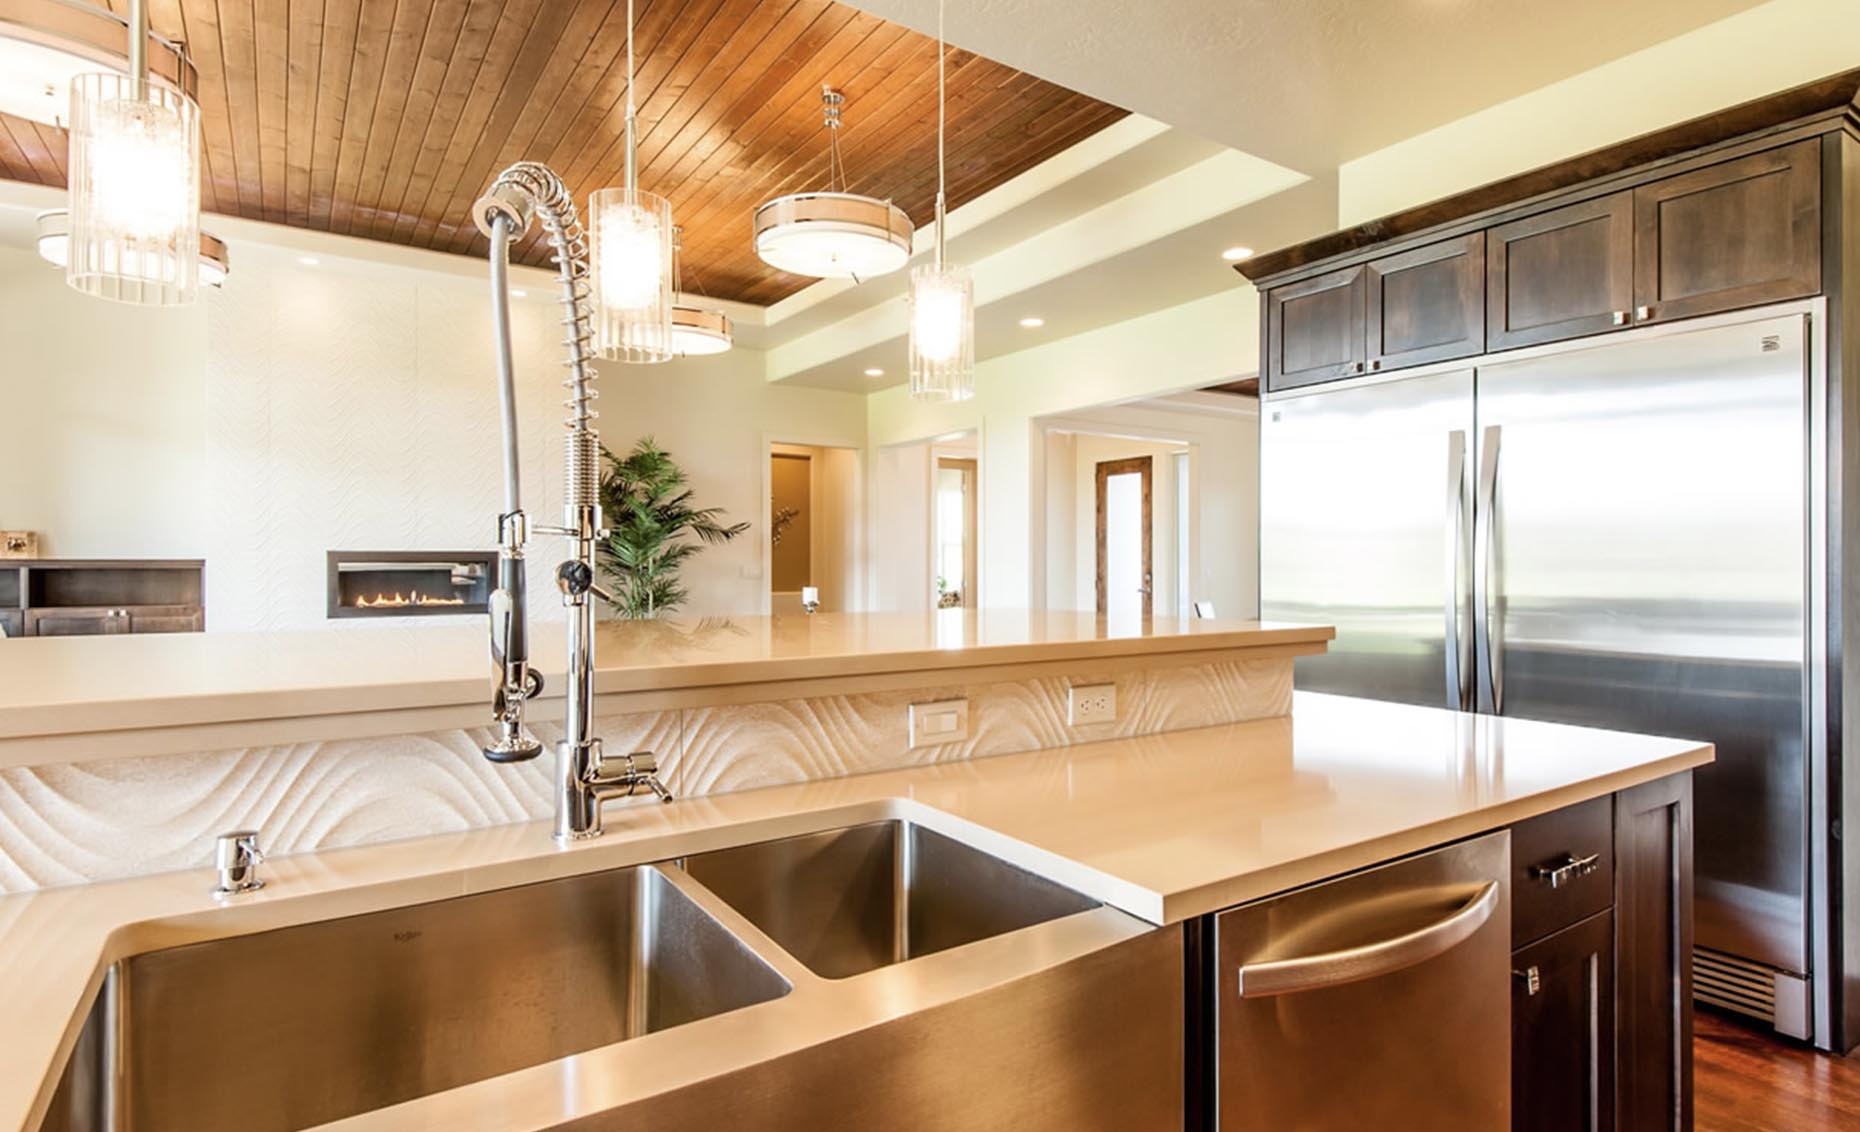 The Contemporary House Kitchen Island